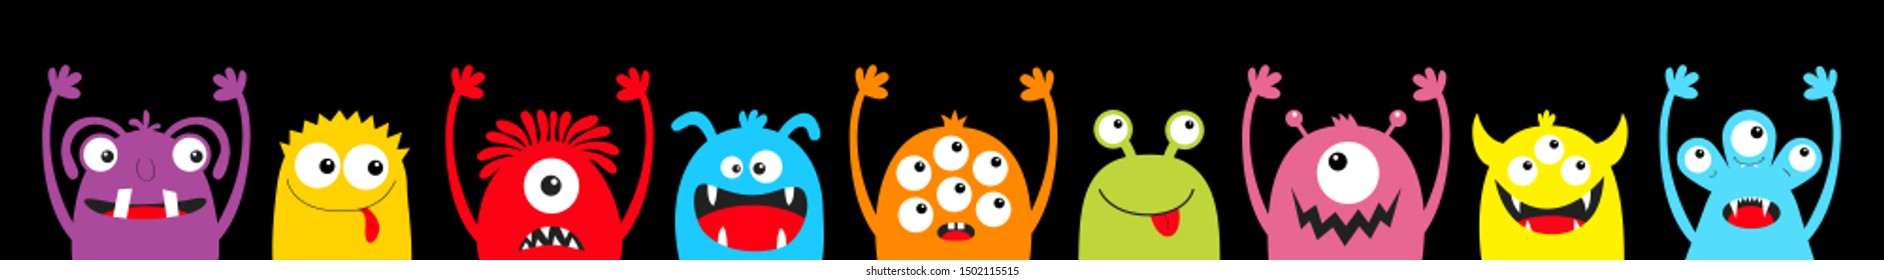 Monster colorful silhouette head face icon set line. Happy Halloween. Eyes, tongue, tooth fang, hands up. Cute cartoon kawaii scary funny baby character. Black background. Flat design. Vector